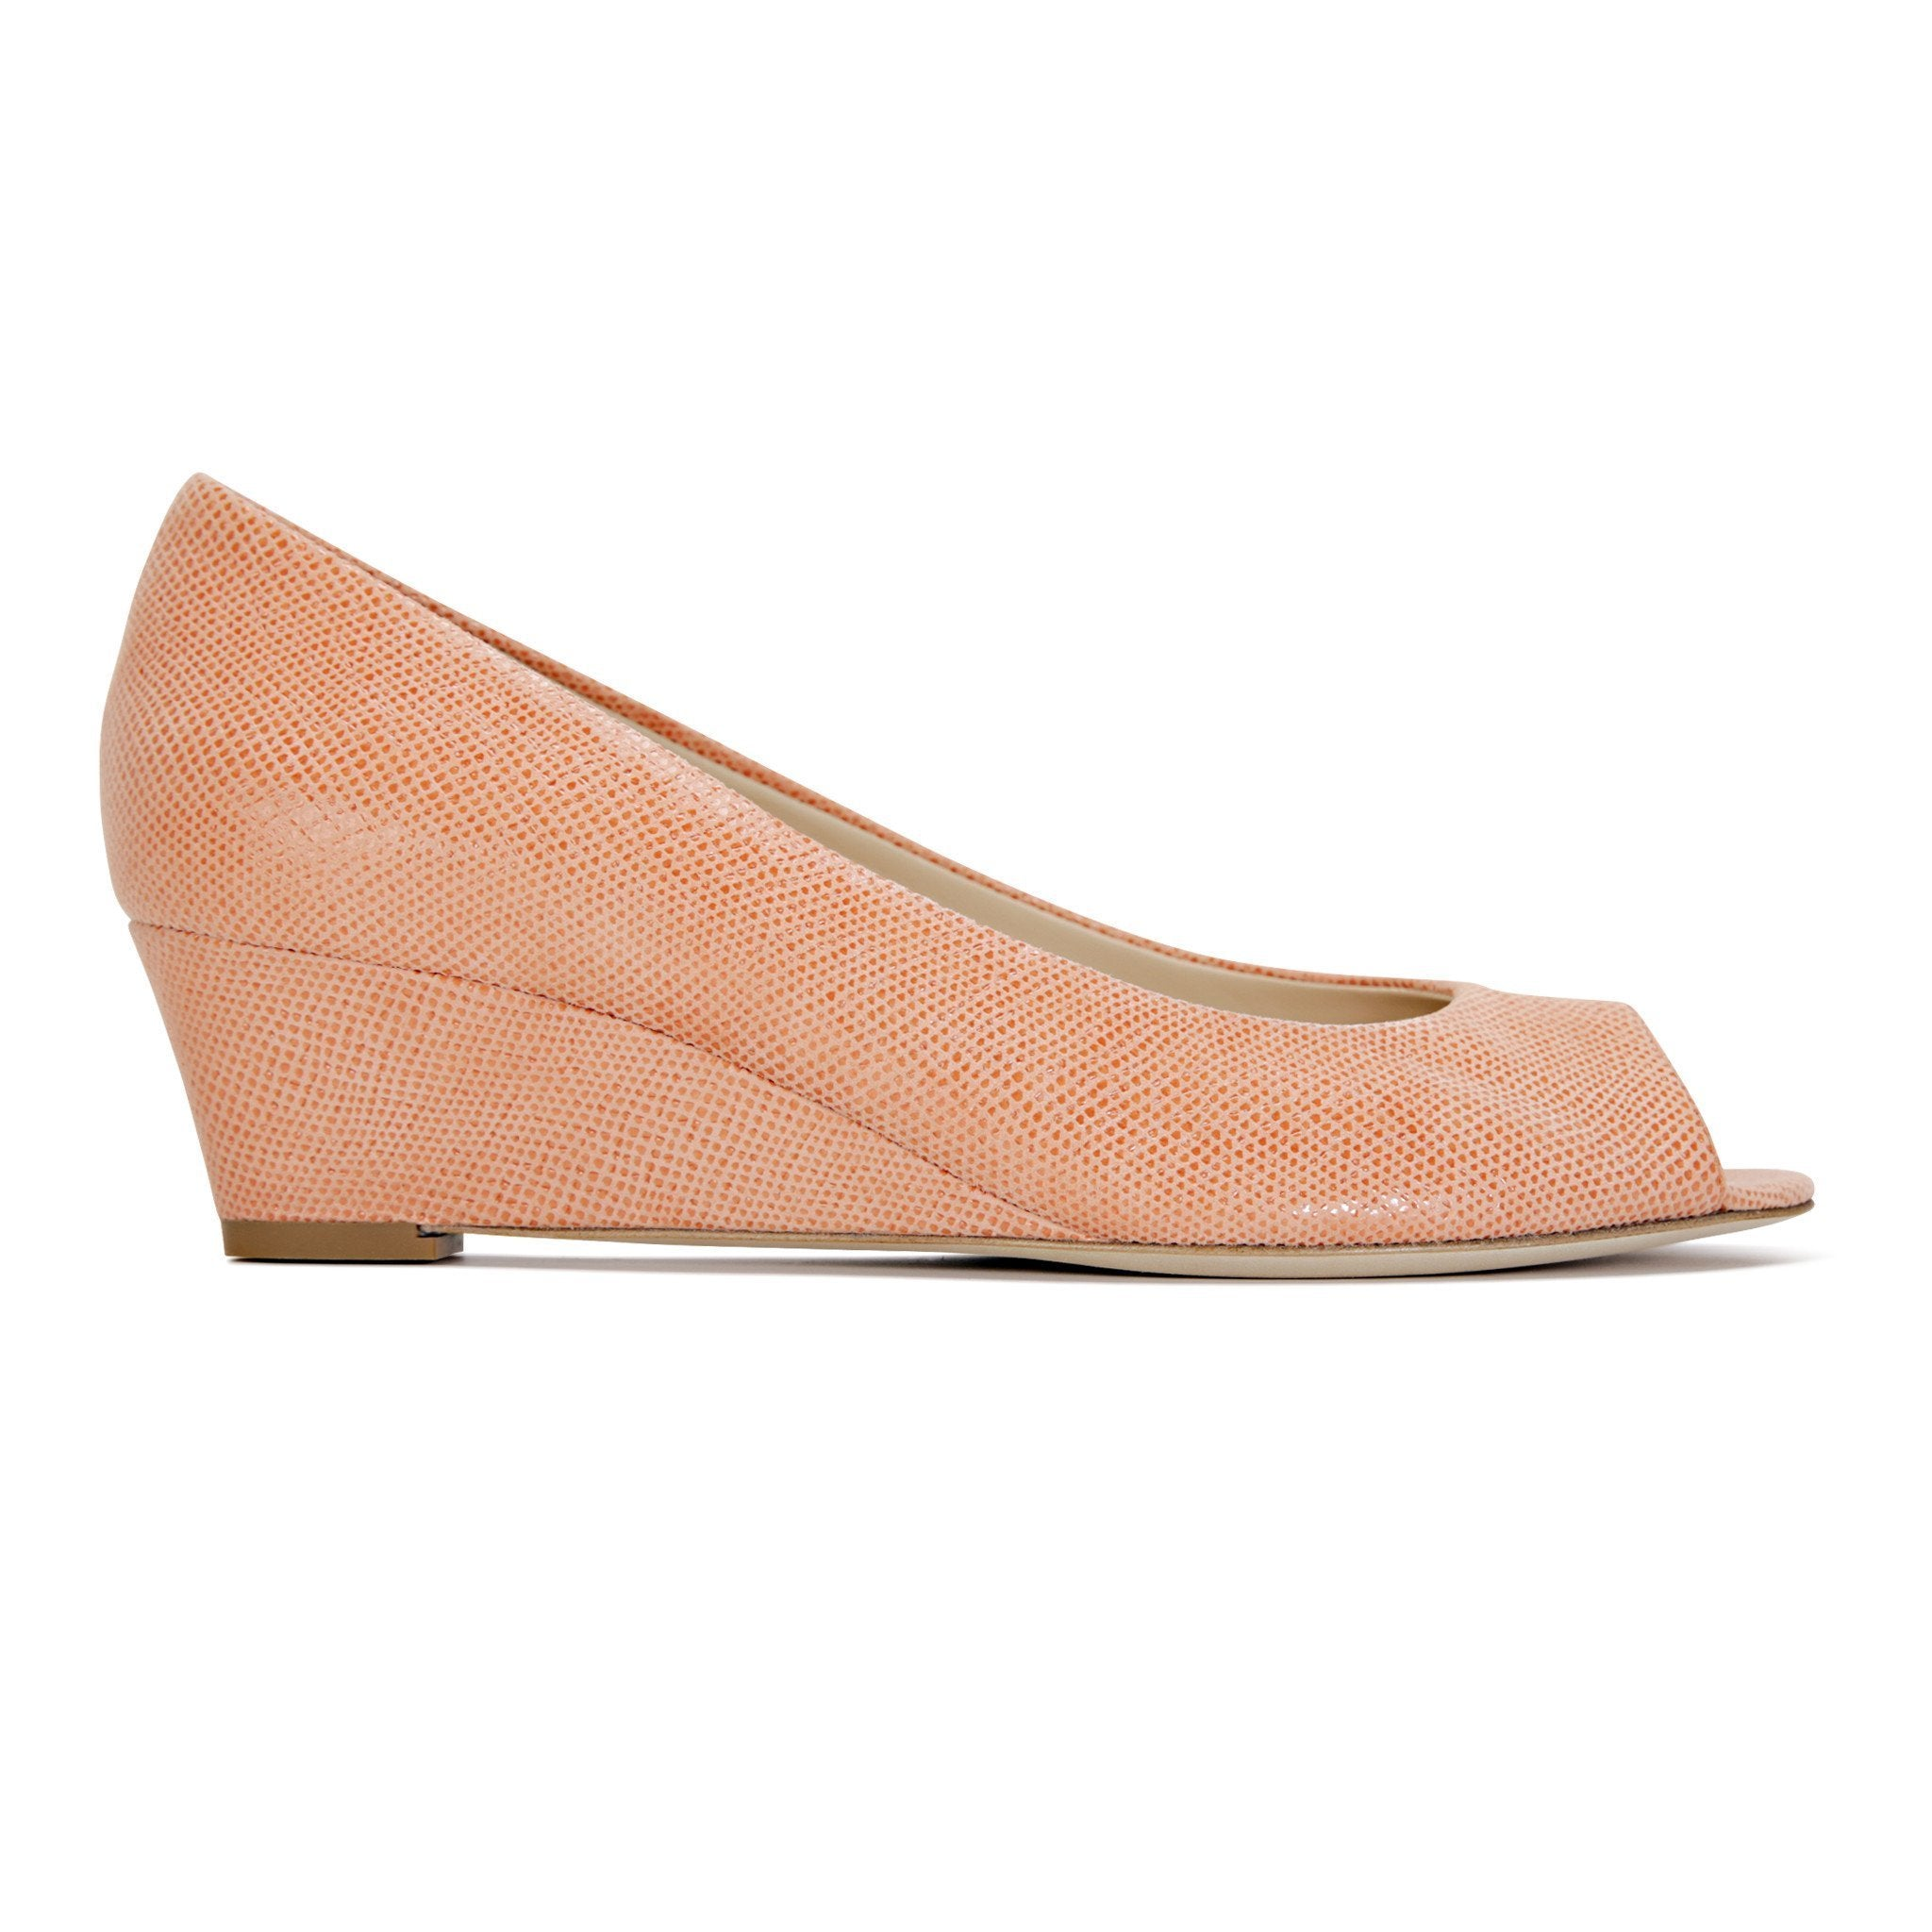 SARDINIA - Karung Rosy Cheeks, VIAJIYU - Women's Hand Made Sustainable Luxury Shoes. Made in Italy. Made to Order.